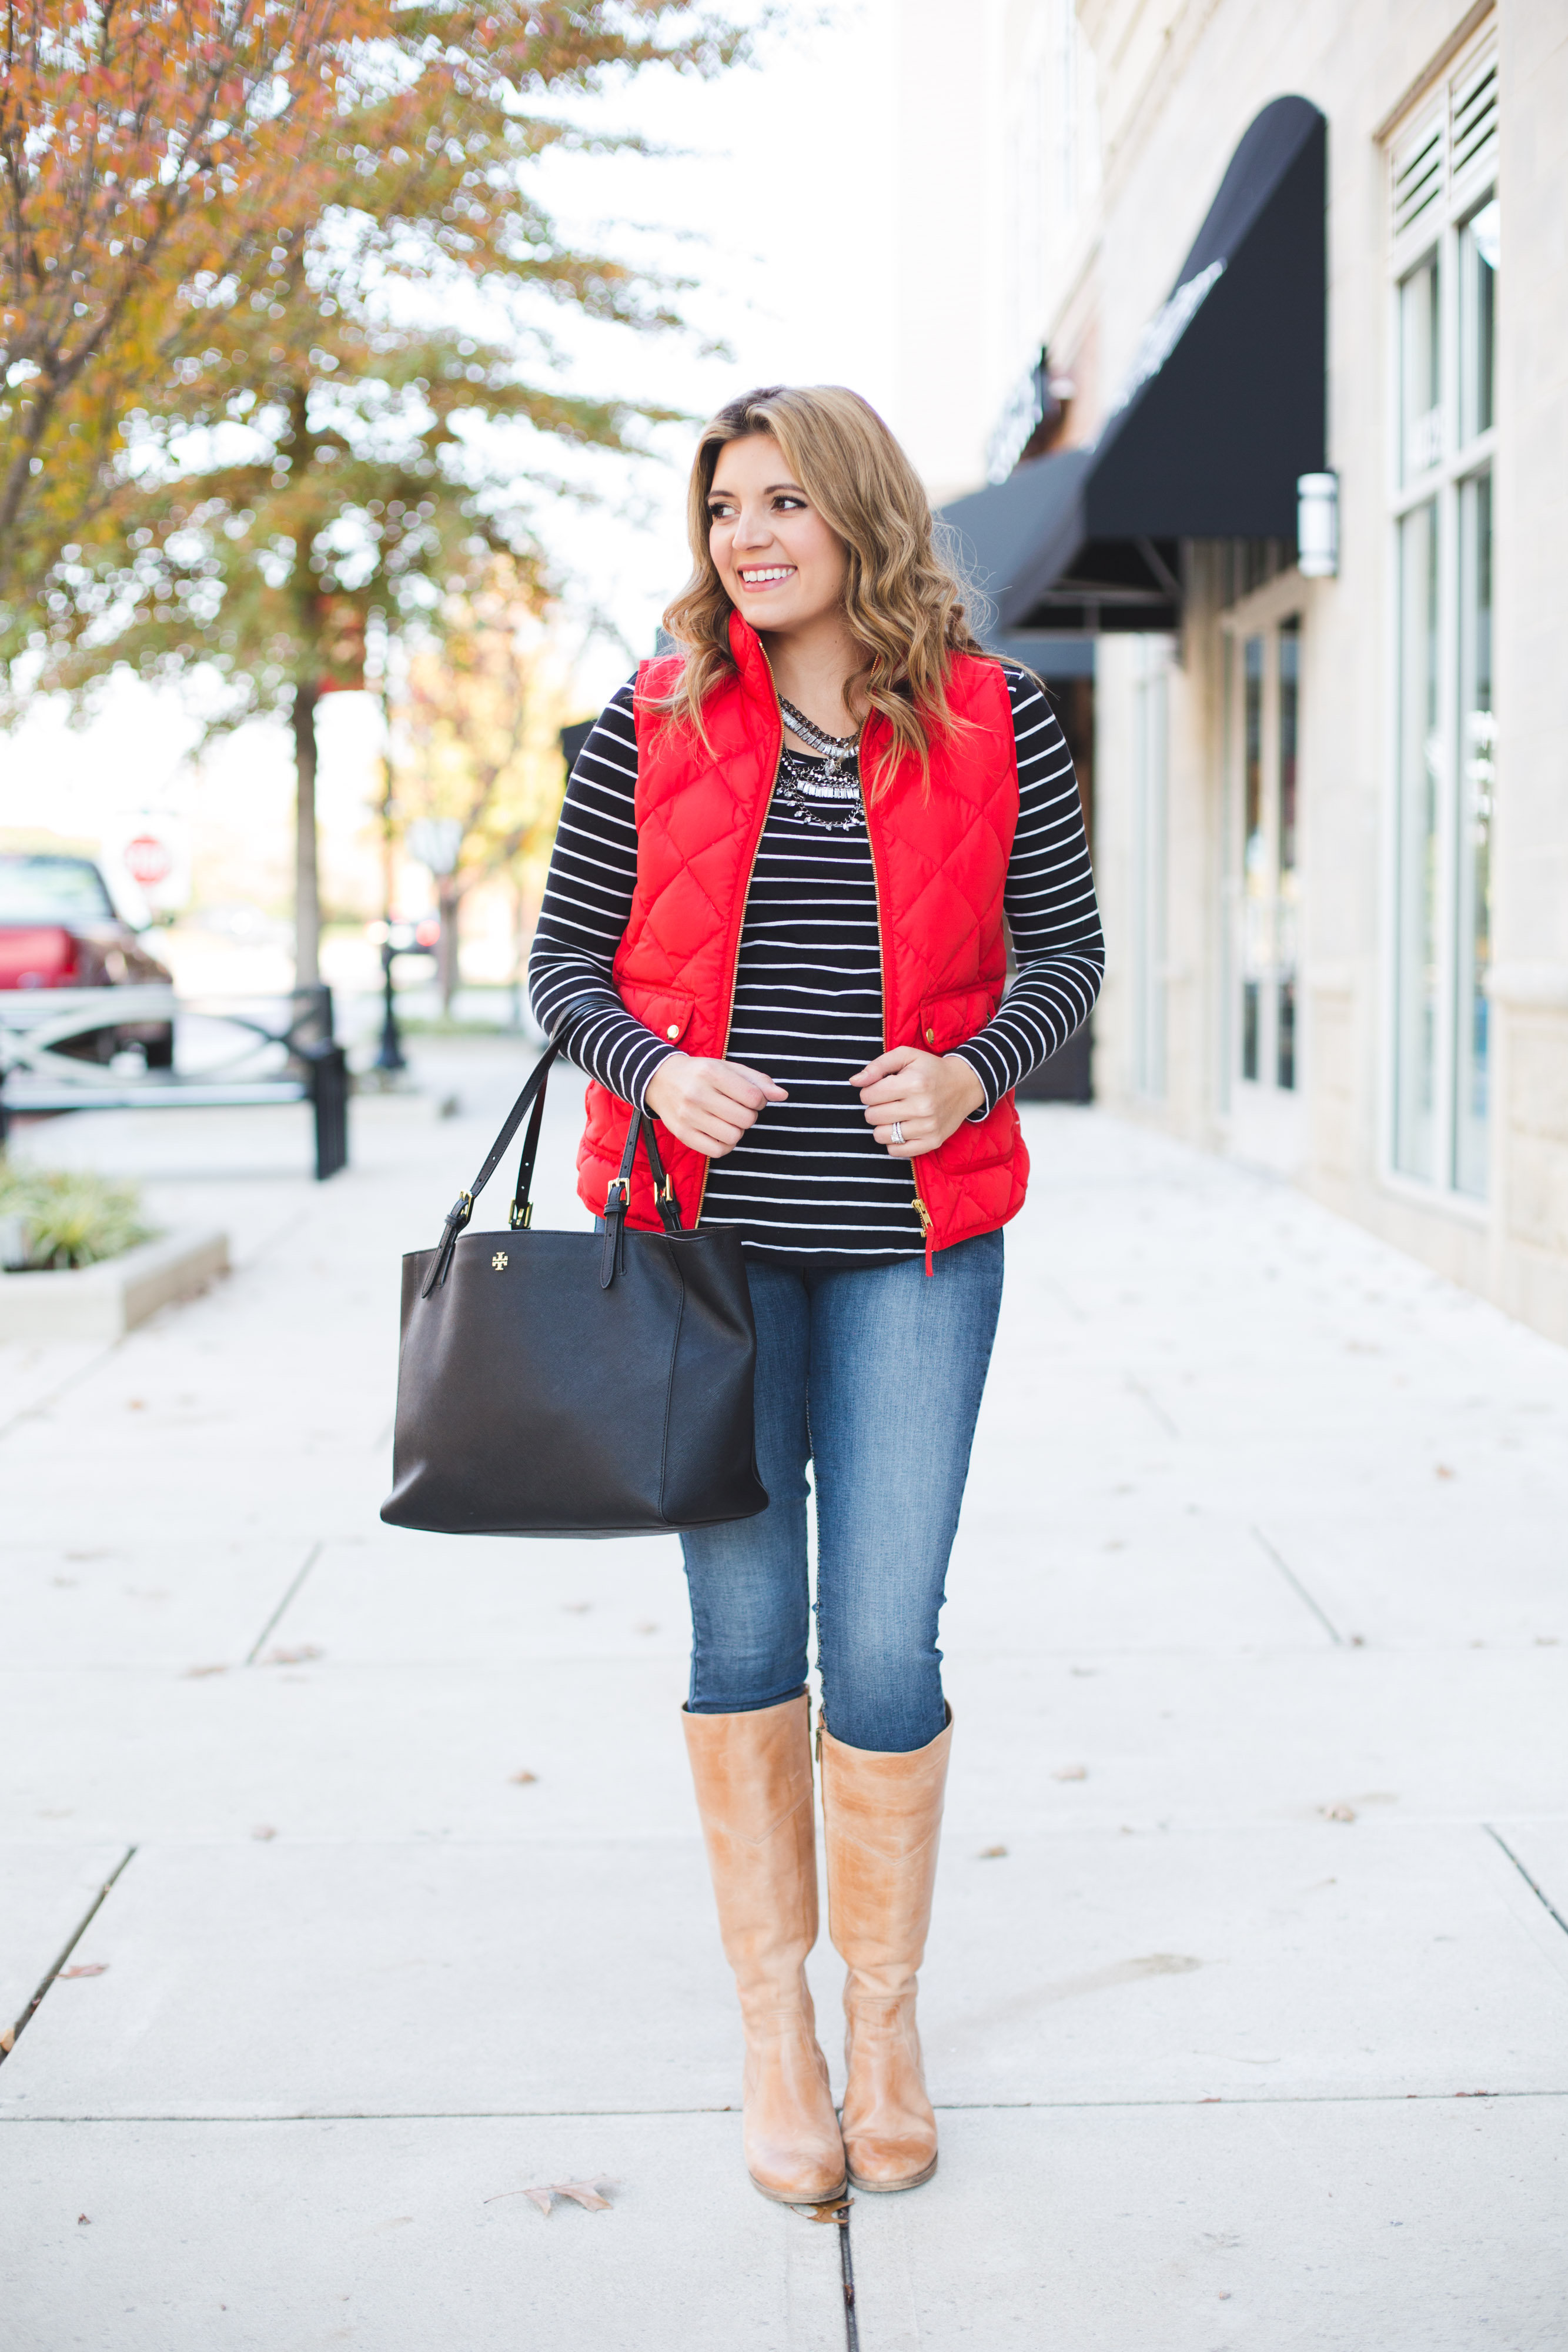 red puffer vest outfit - red excursion vest, striped tee, skinny jeans, tan boots | www.bylaurenm.com